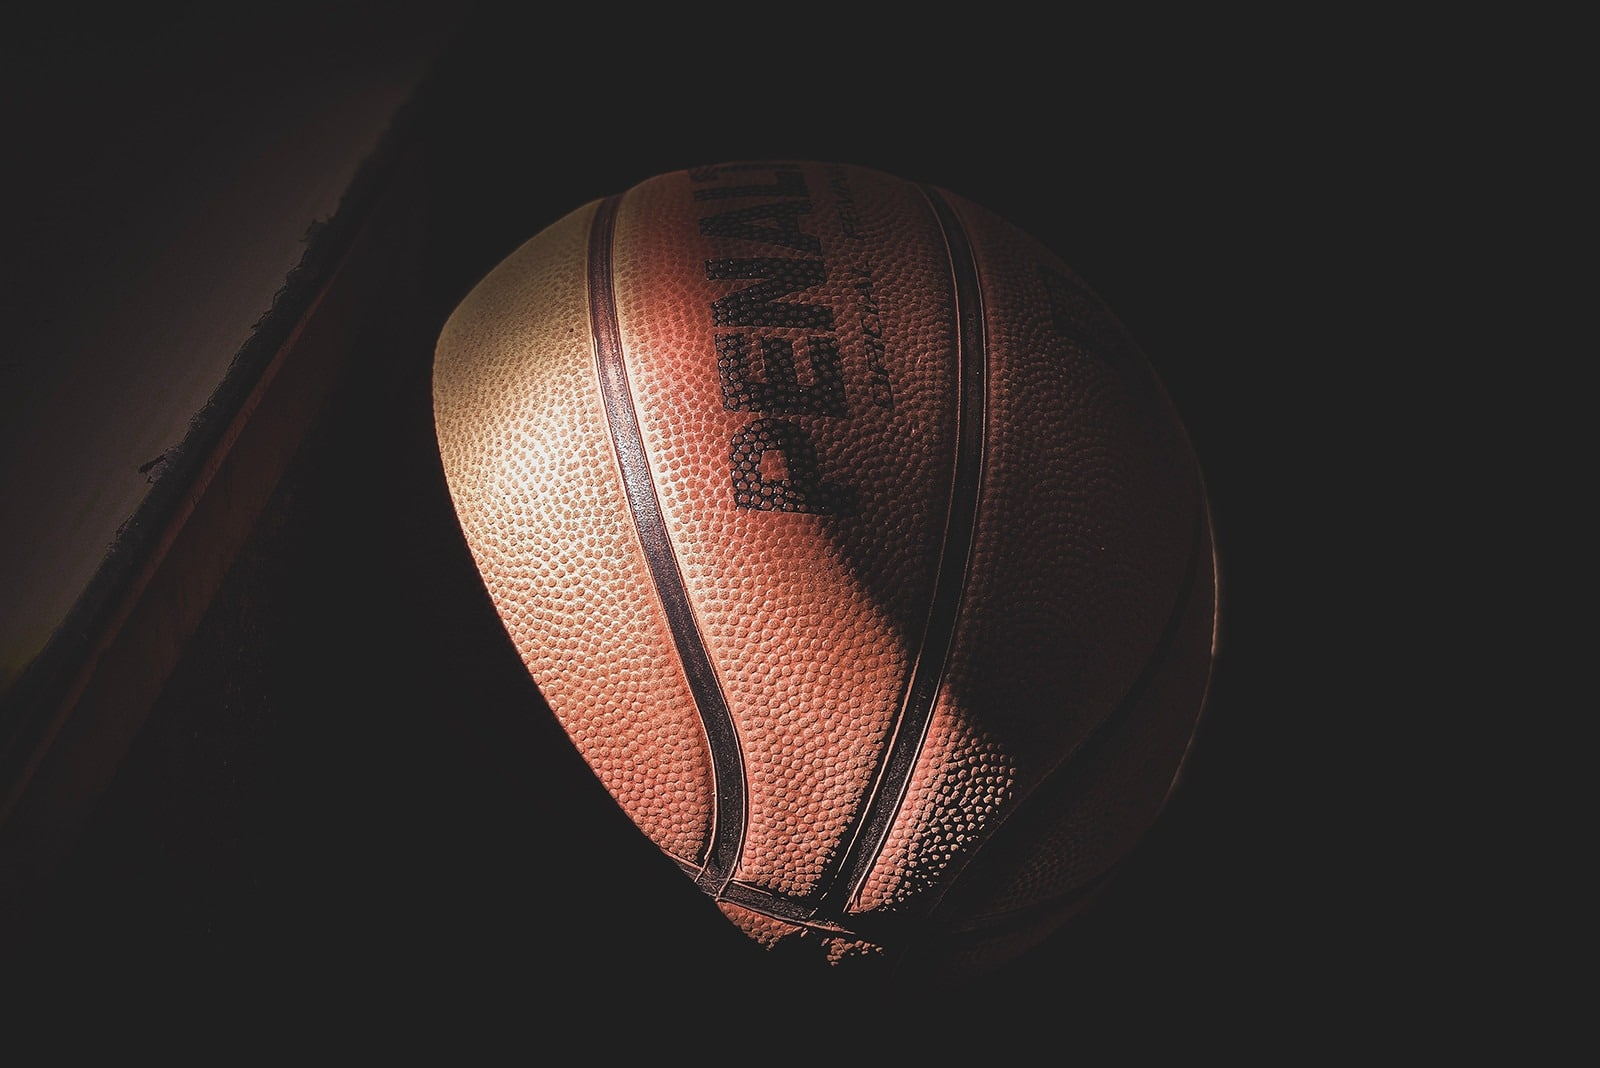 Photo d'un ballon de basket-ball